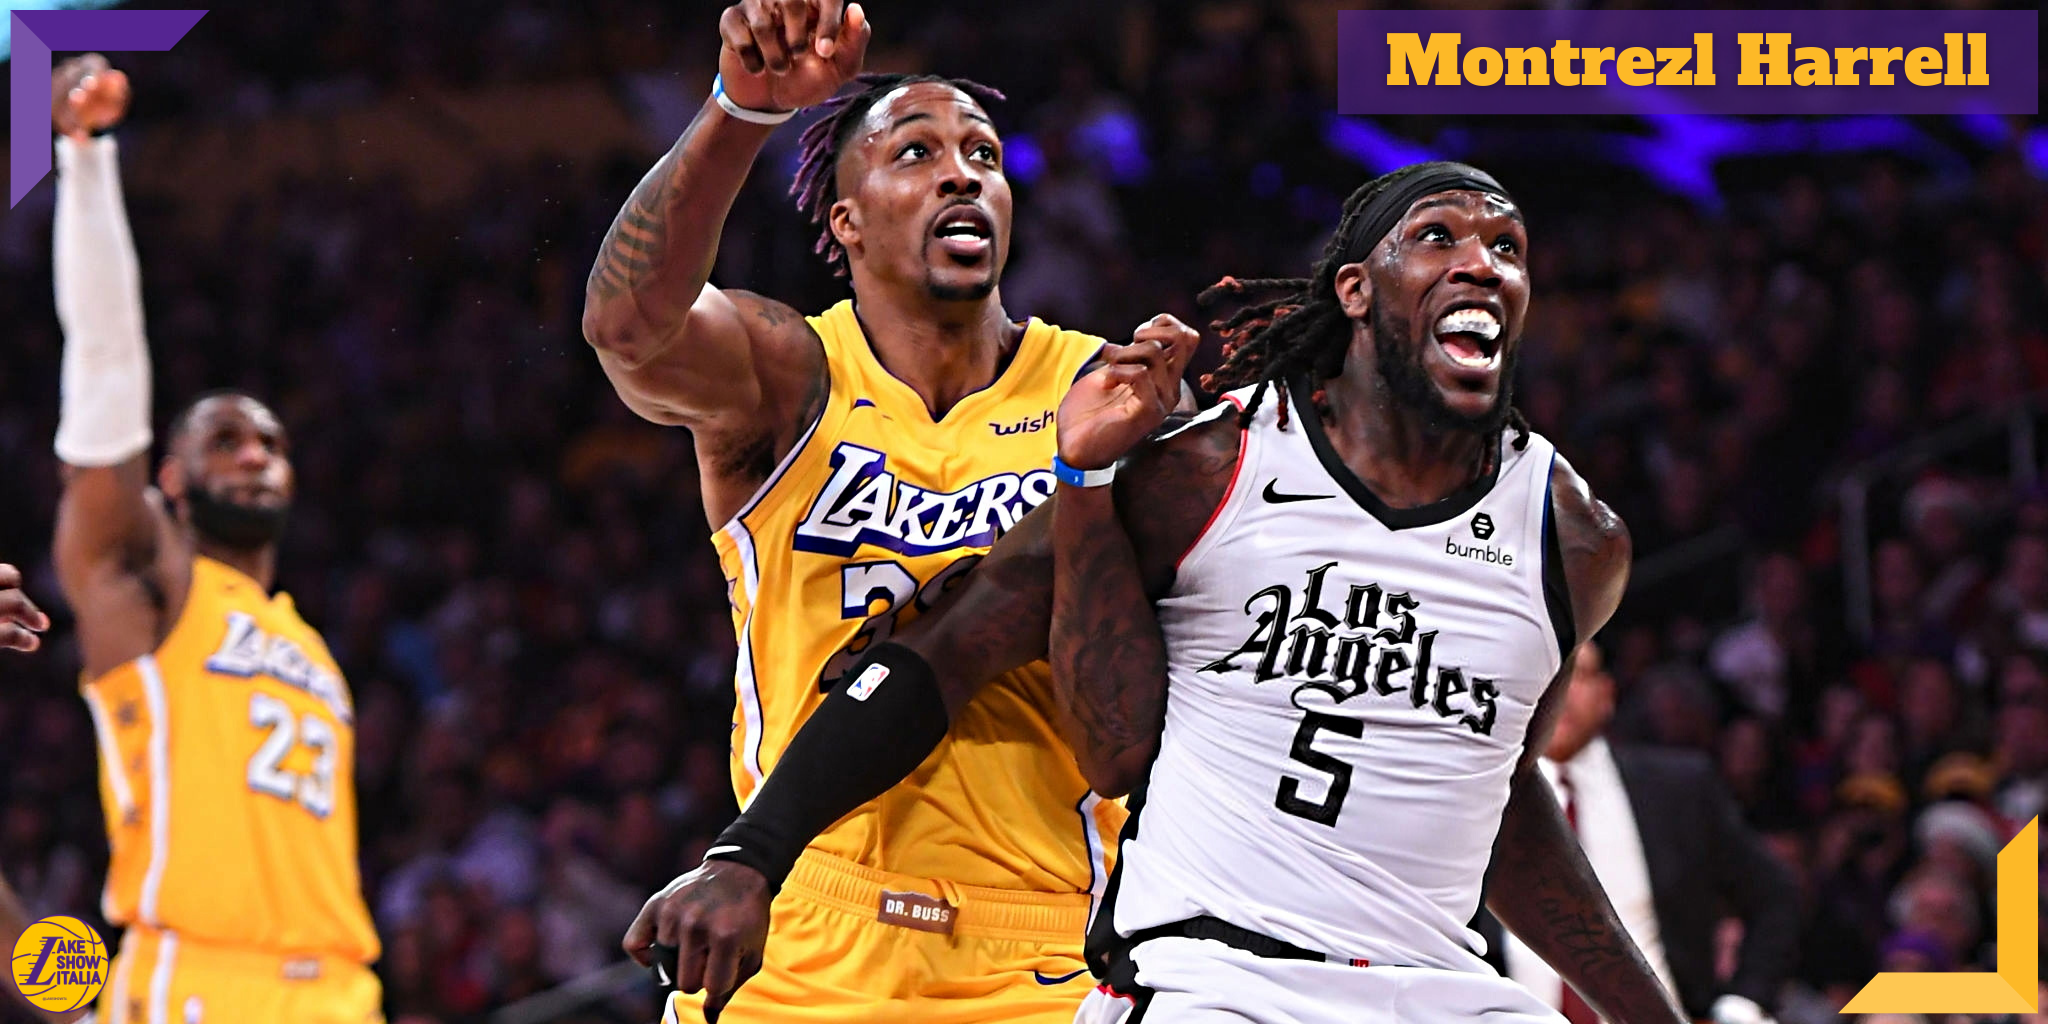 Dwight Howard #39 of the Los Angeles Lakers and Montrezl Harrell #5 of the Los Angeles Clippers battle for a rebound off a shot by LeBron James #23 of the Los Angeles Lakers in the second half of the game at Staples Center on December 25, 2019 in Los Angeles, California.